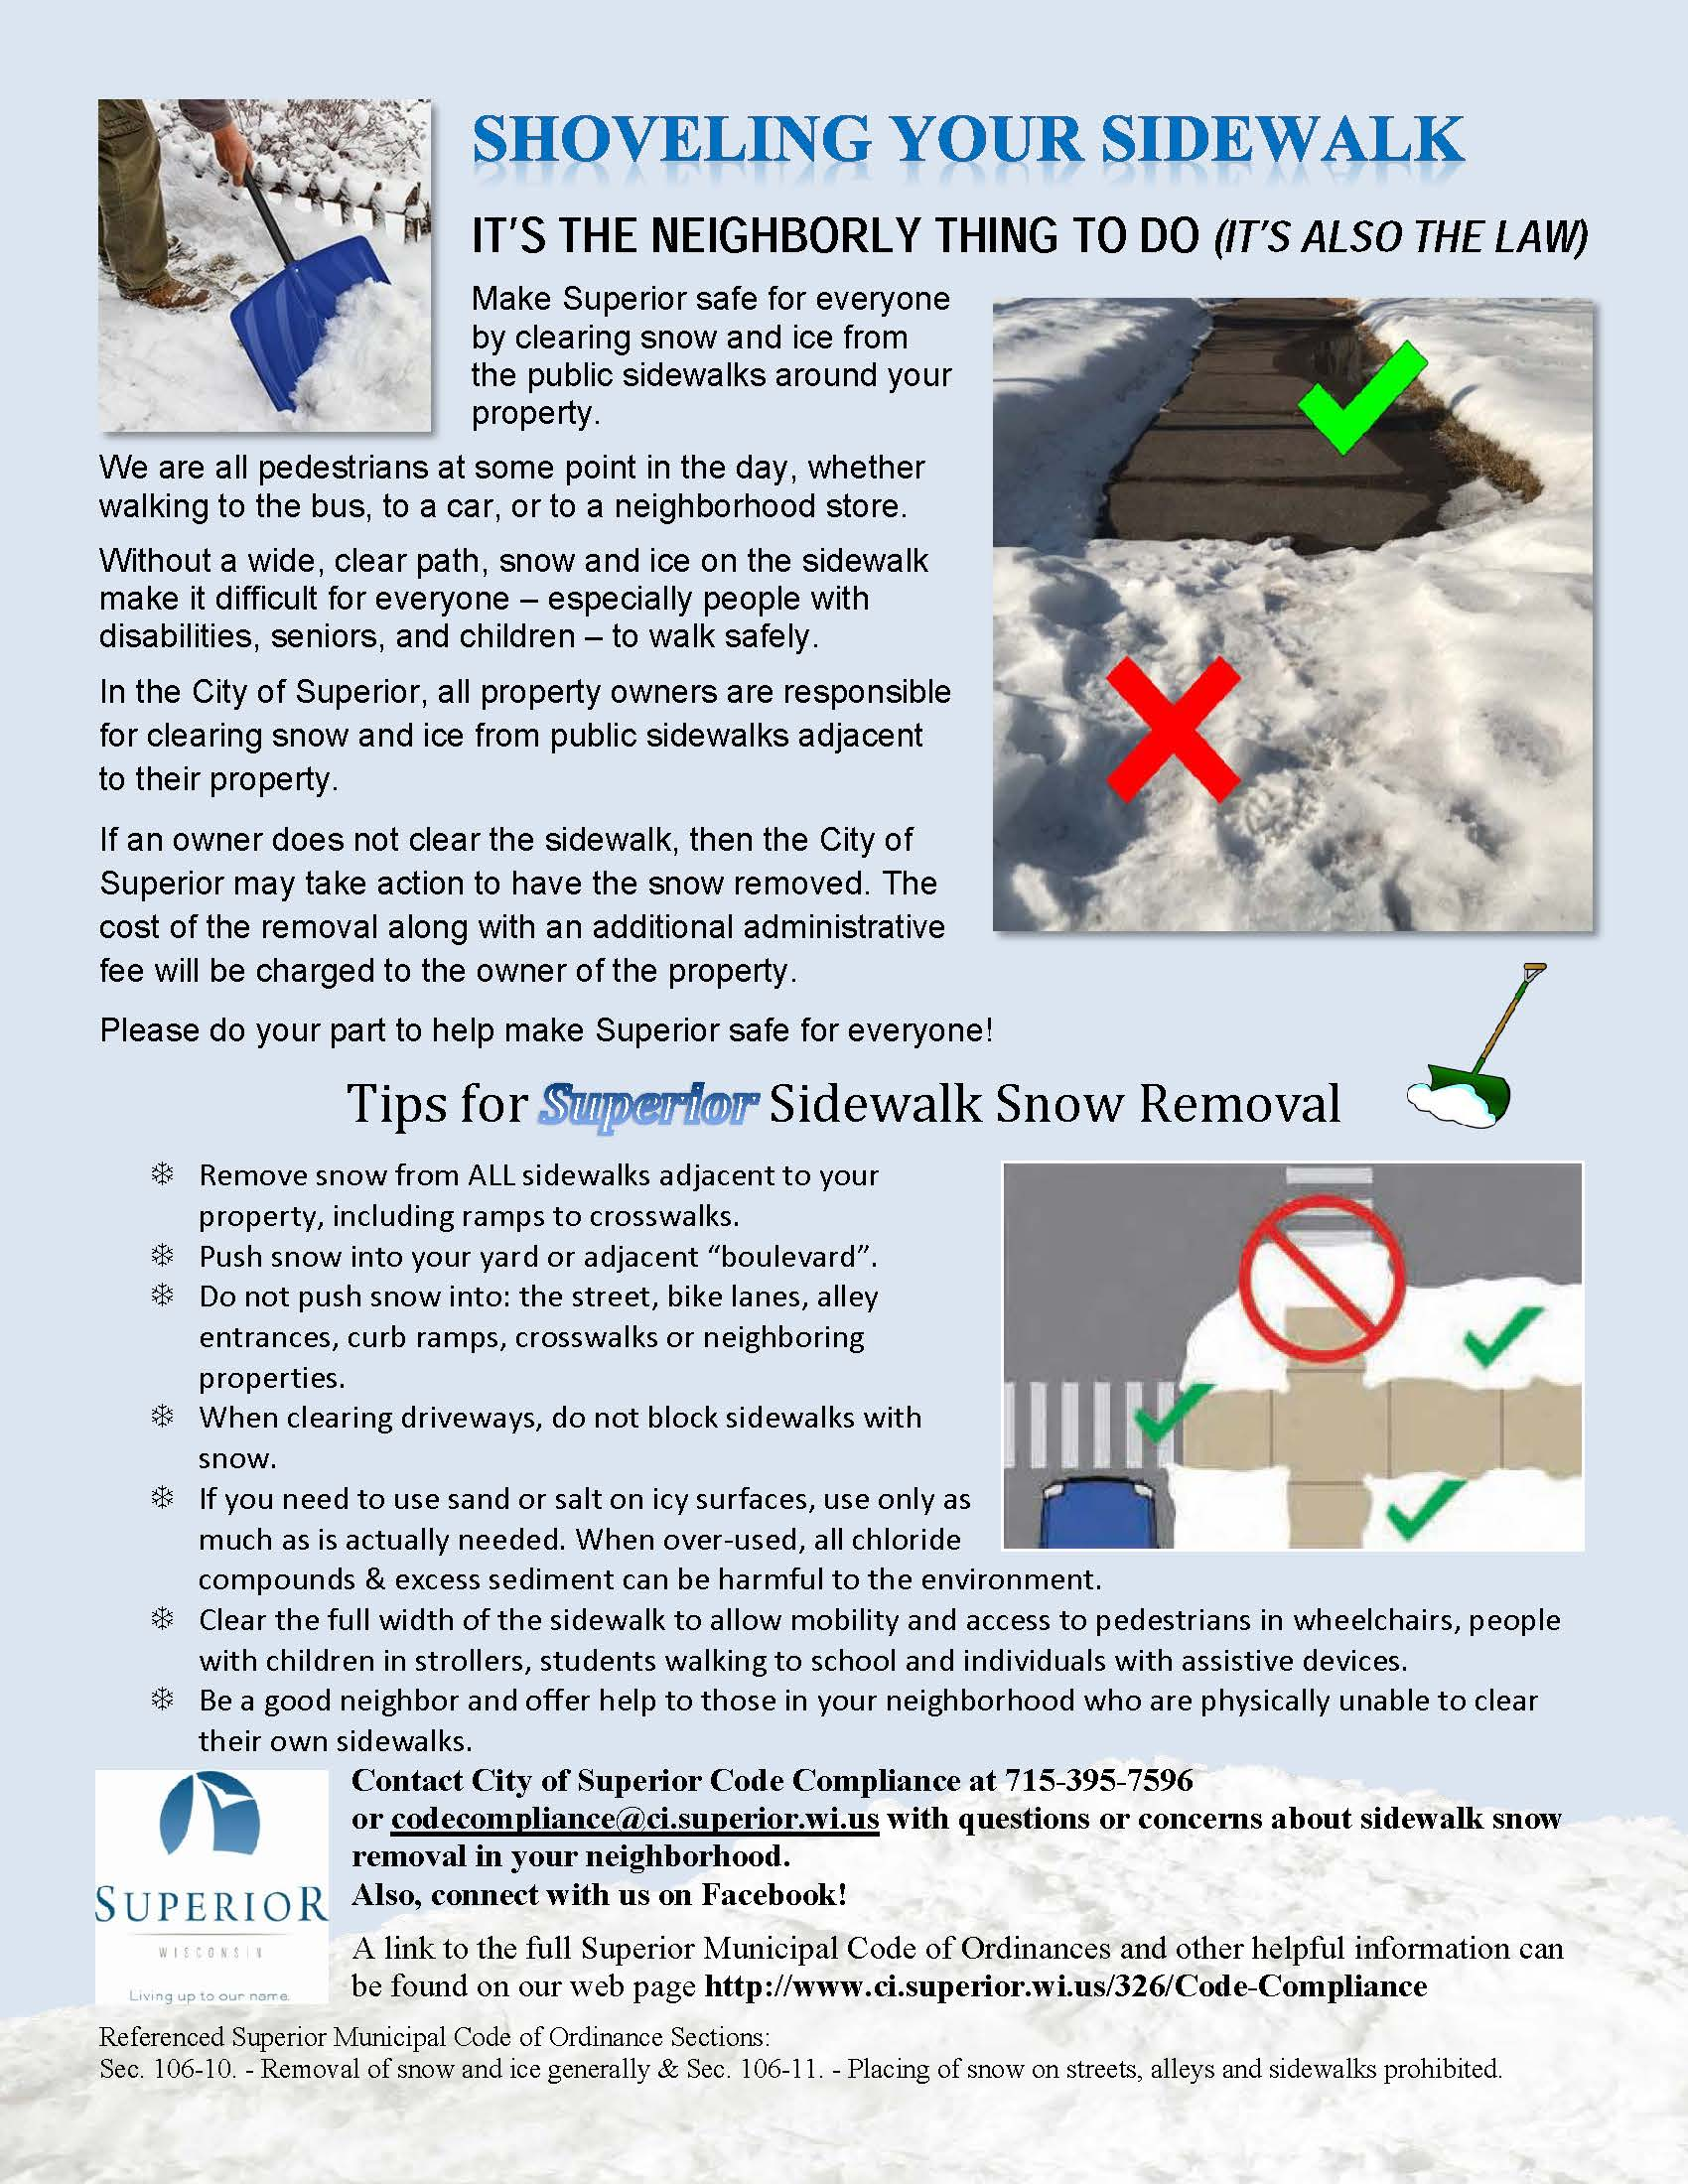 instructions for removing snow from city sidewalks